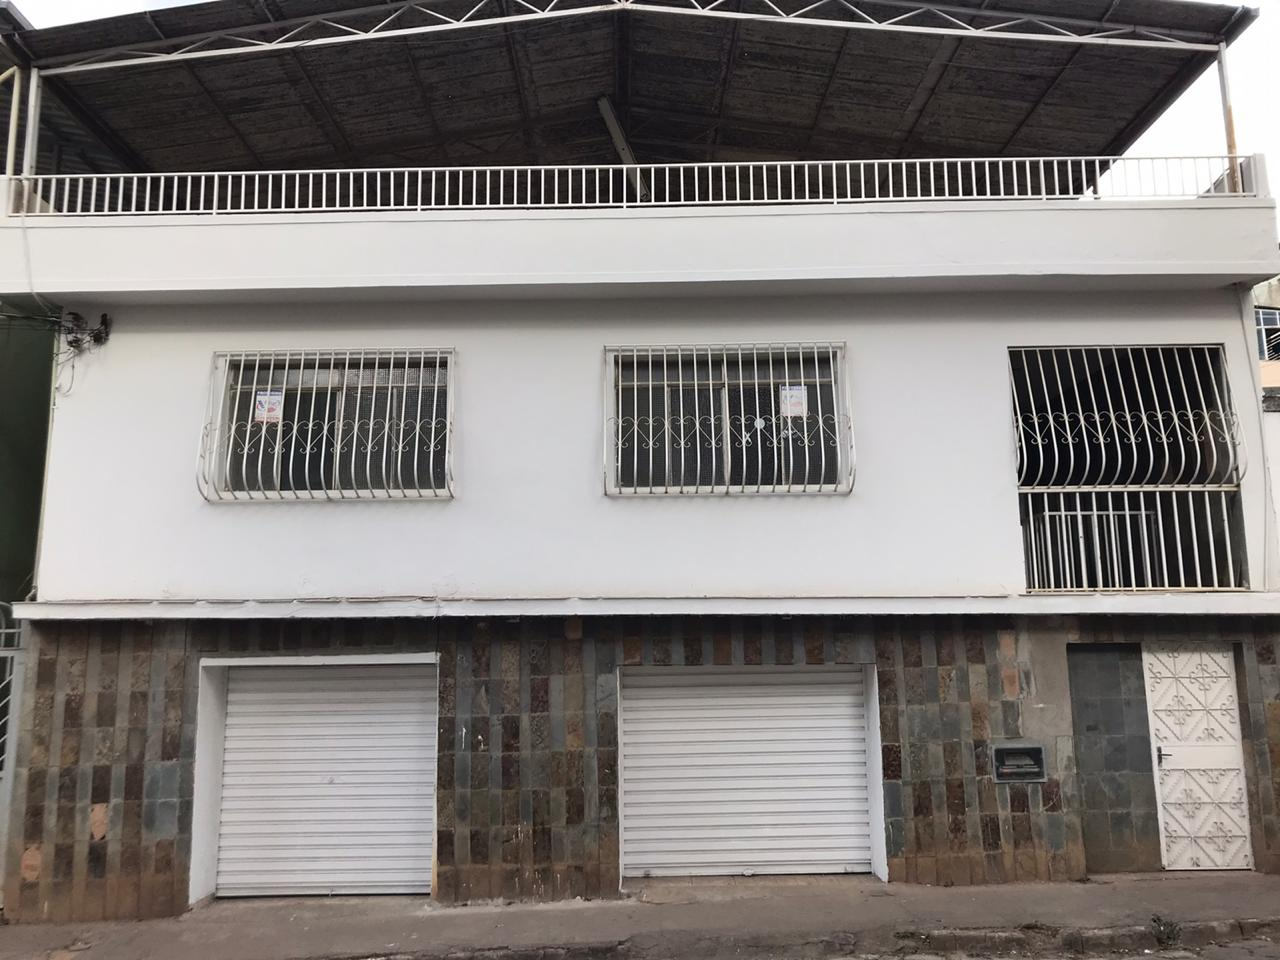 Casa antiga, Ideal para lote!Lote com 360m² (12m Frente/Fundos x 30m lateral)